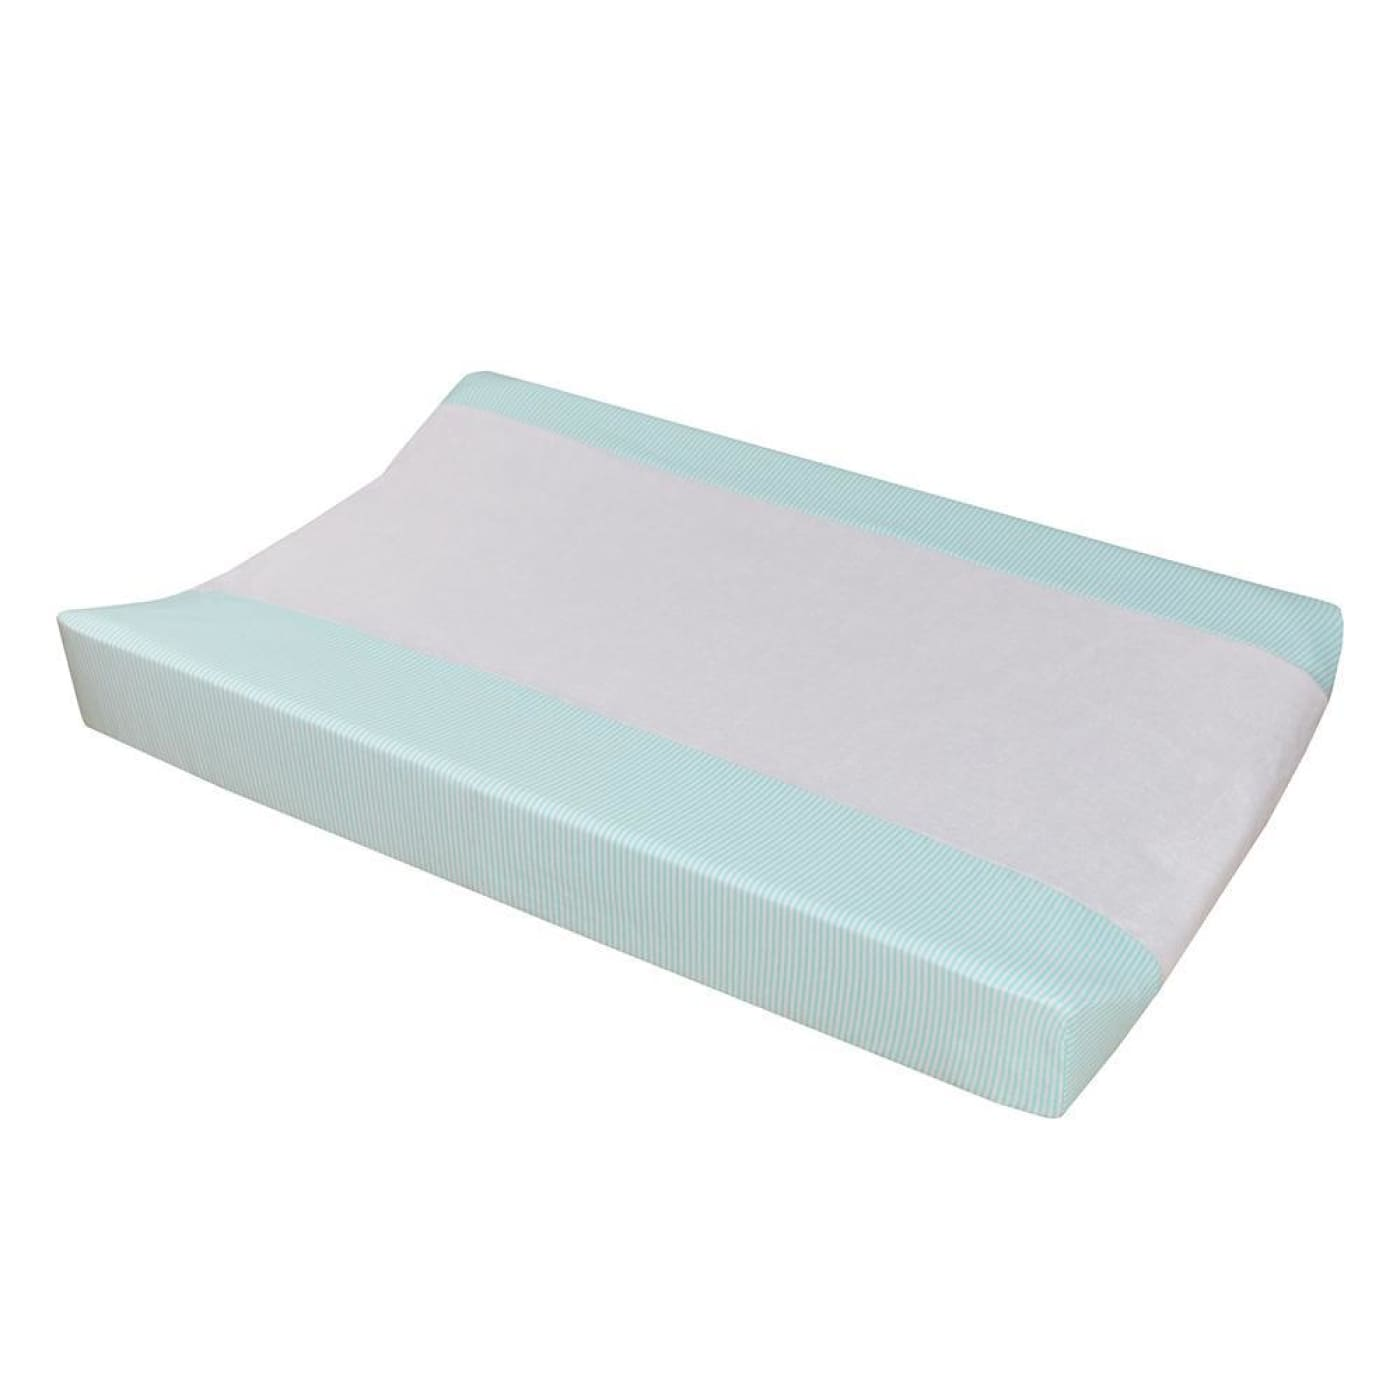 Living Textiles Jersey Change Pad Cover- Aqua Stripe/Towelling - BATHTIME & CHANGING - CHANGE MATS/COVERS